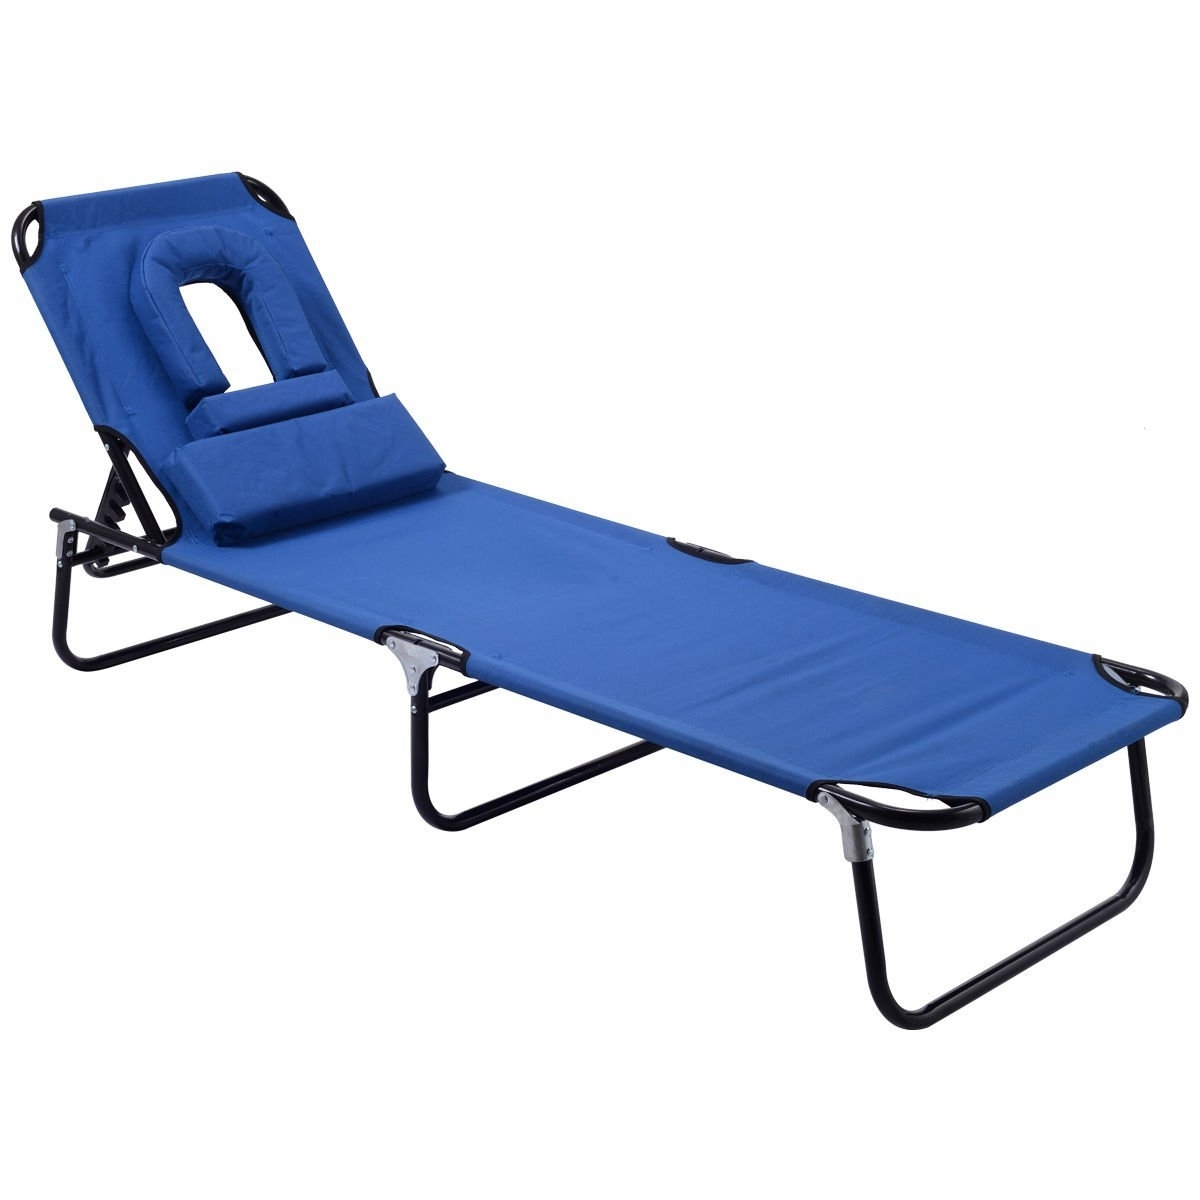 Famous Amazon: Ostrich Lounge Chaise: Garden & Outdoor With Chaise Lounge Folding Chairs (View 8 of 15)